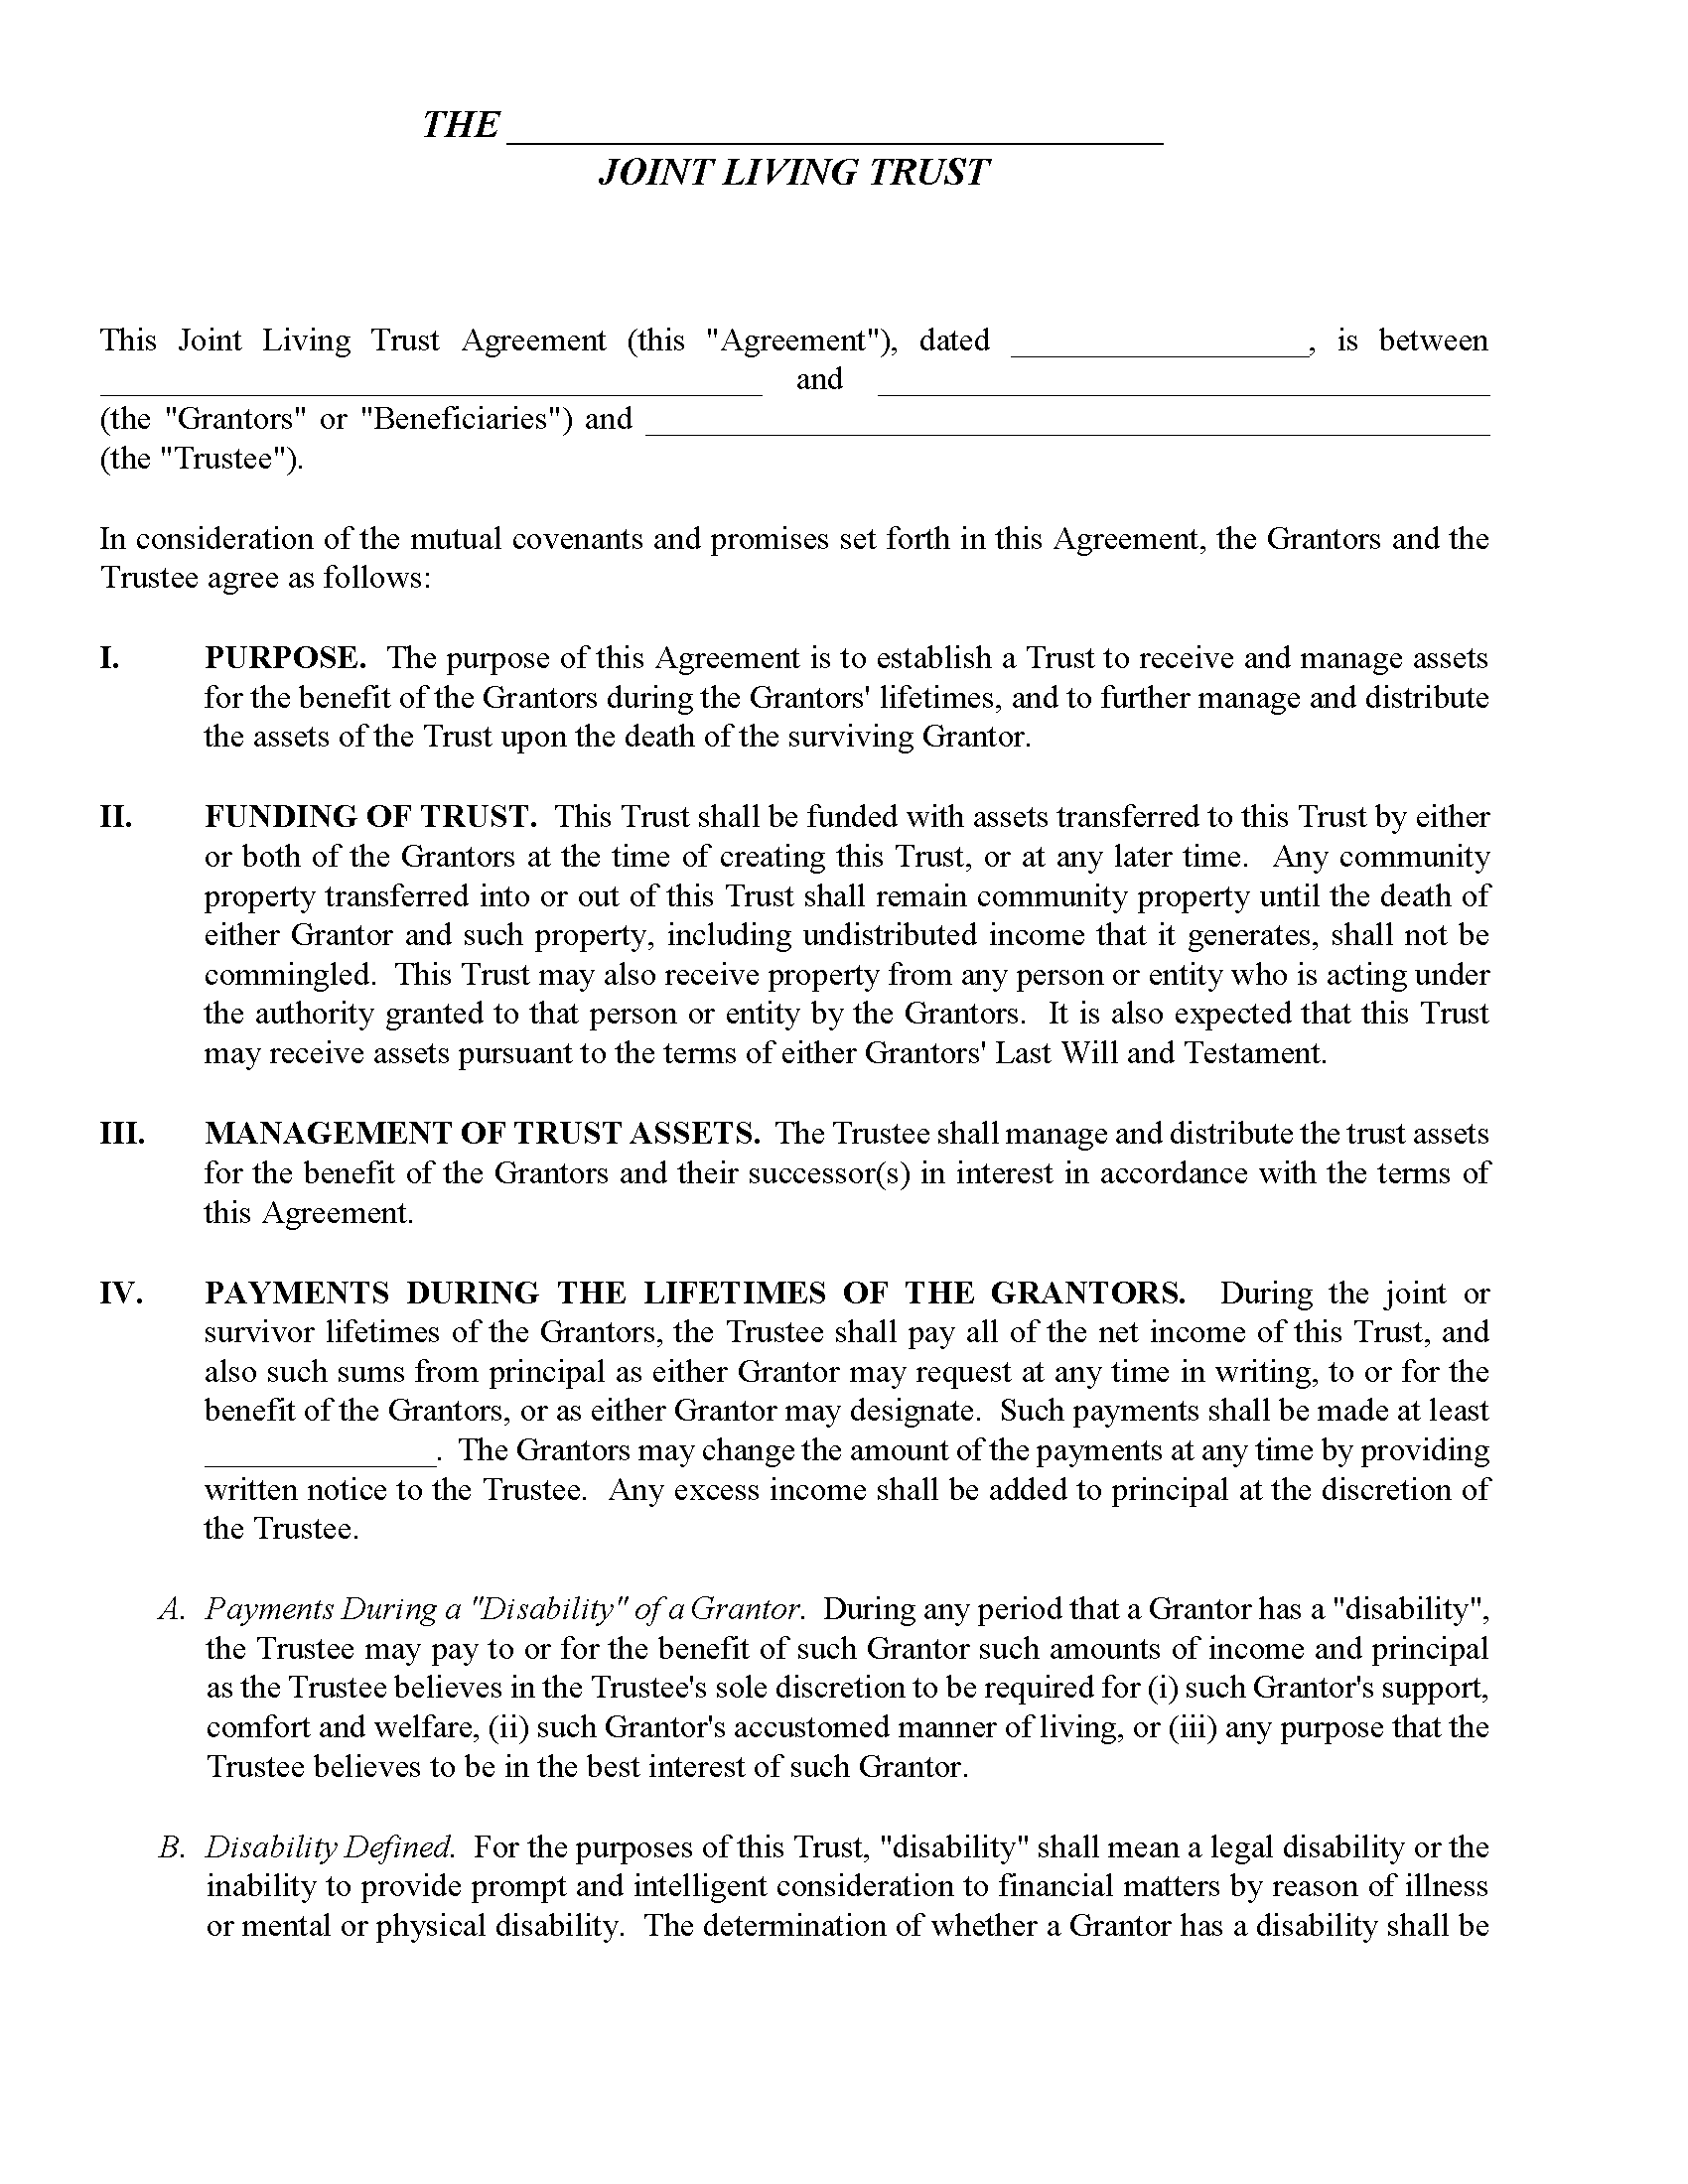 Wisconsin Joint Living Trust Form